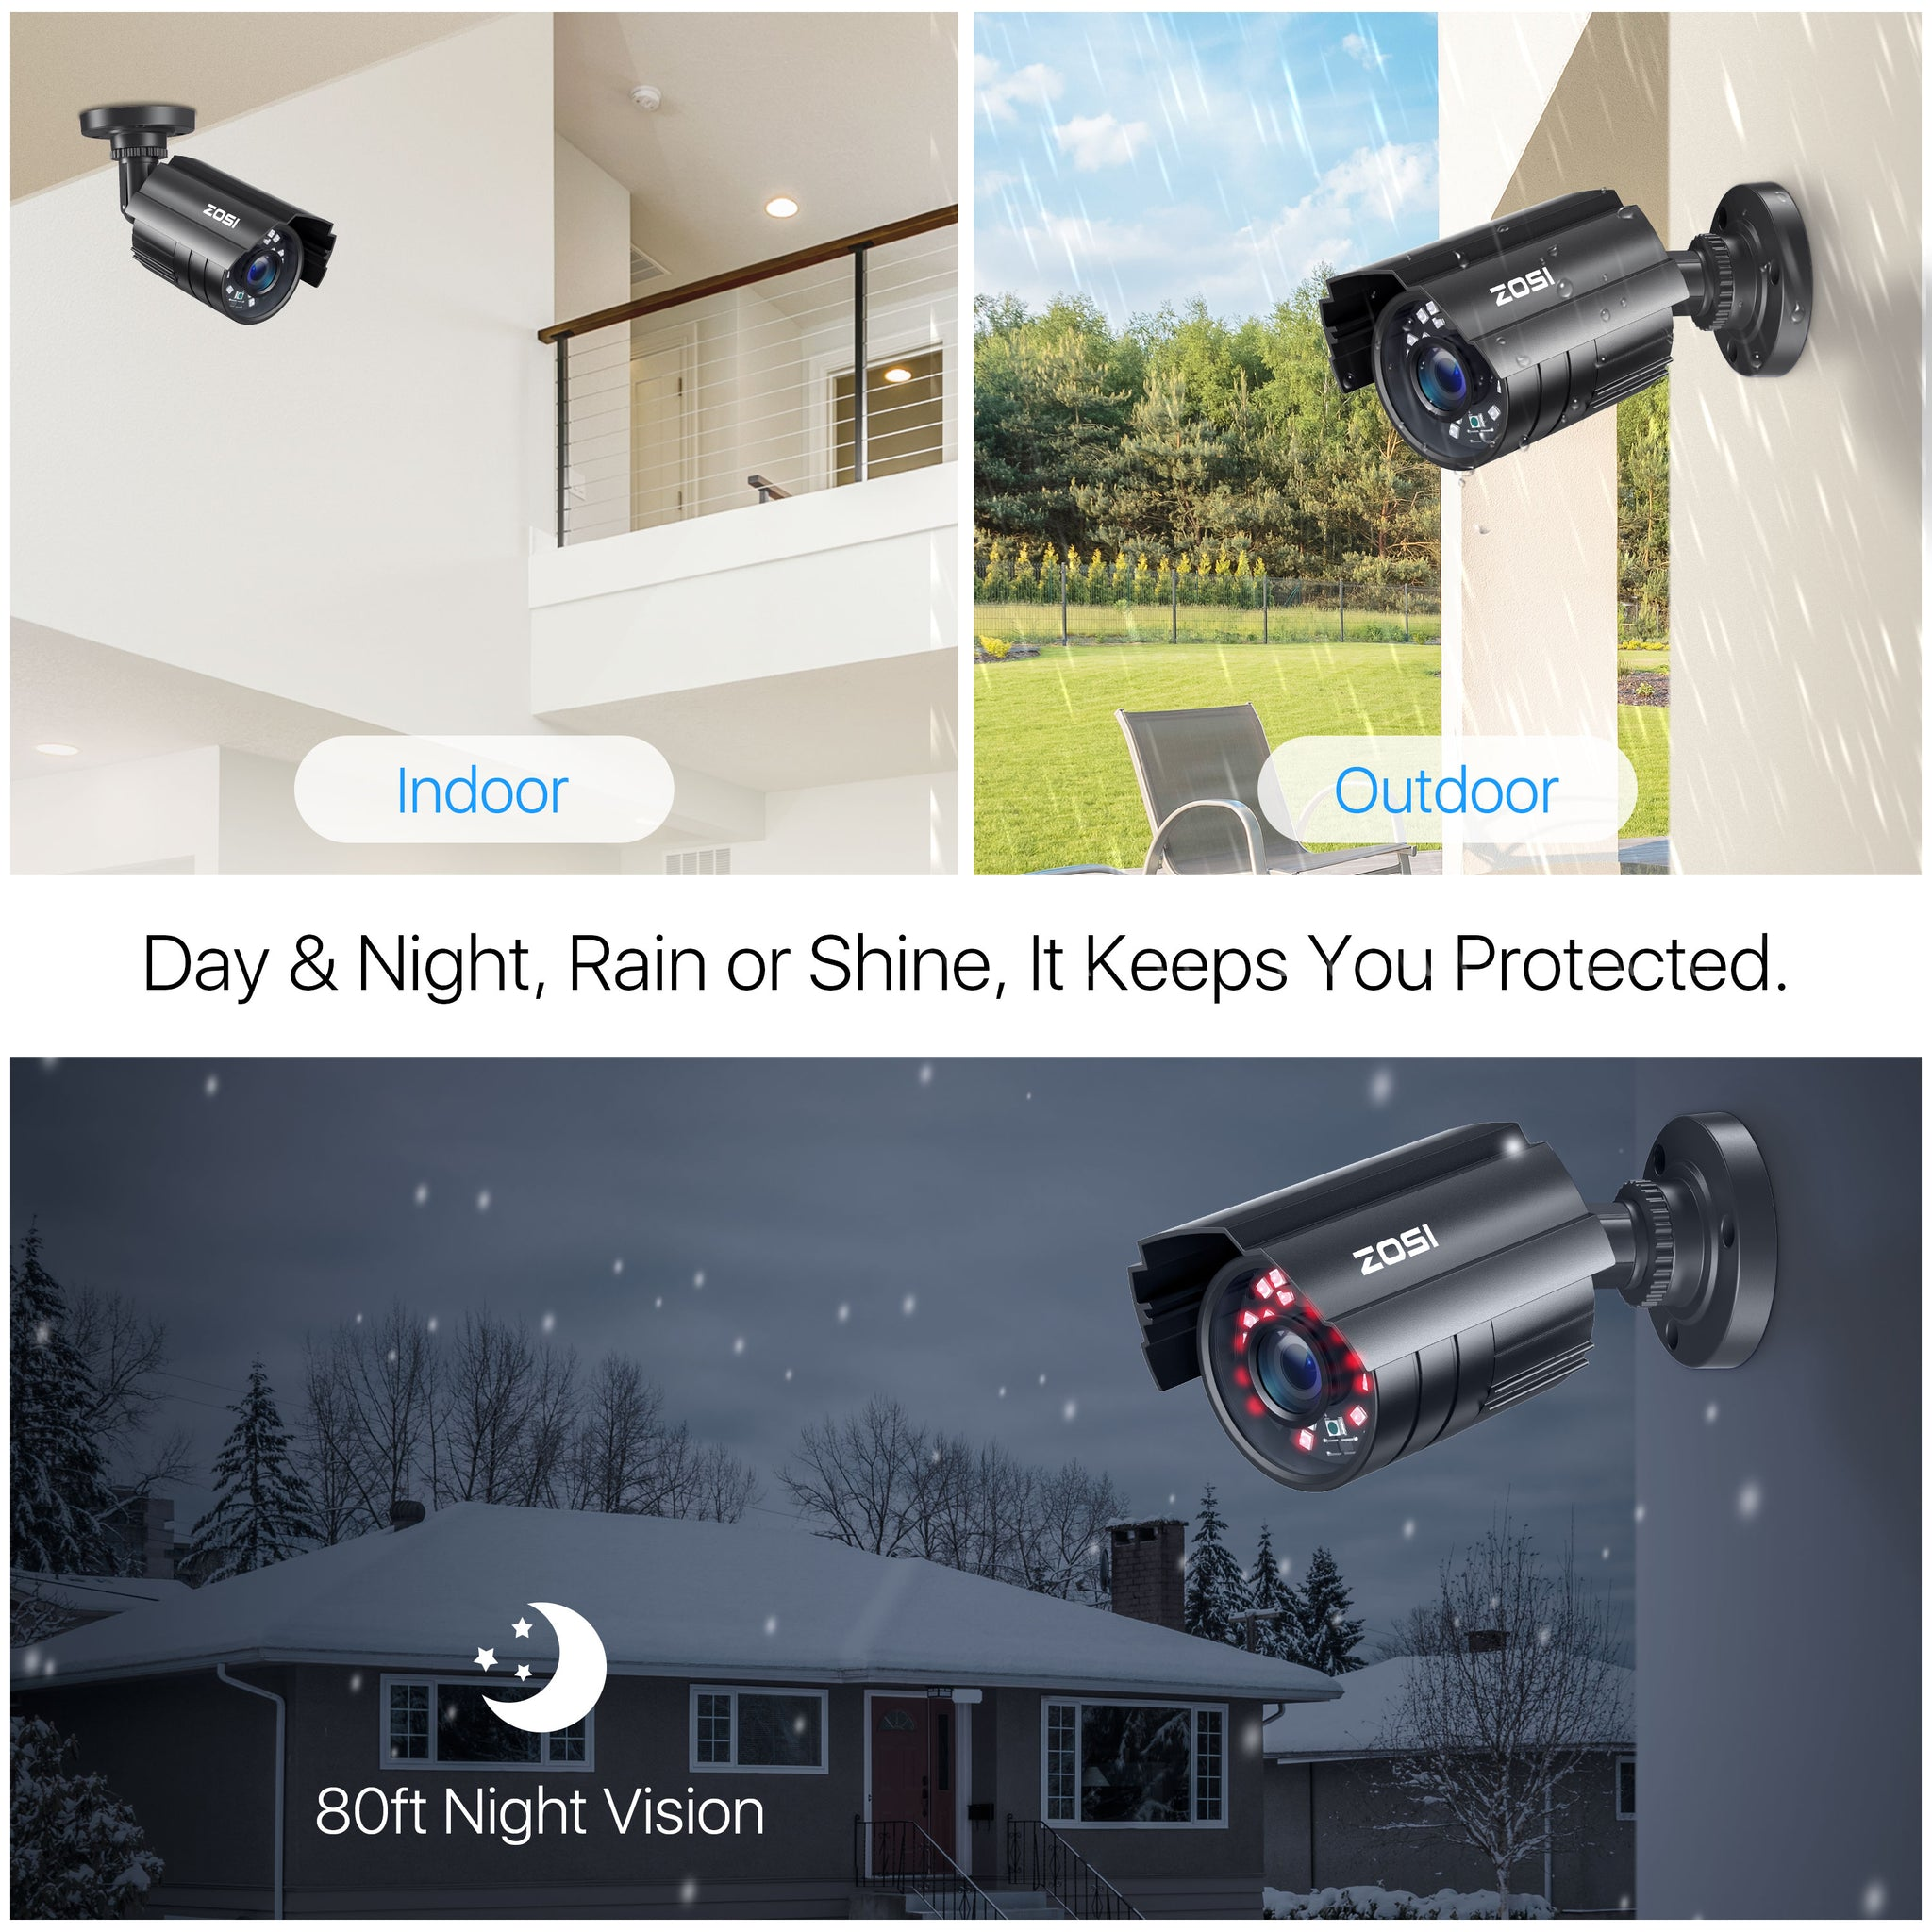 1080P Security Camera System, 8 Channel H.265+ Video DVR Recorder, Indoor Outdoor Weatherproof Securtiy Camera